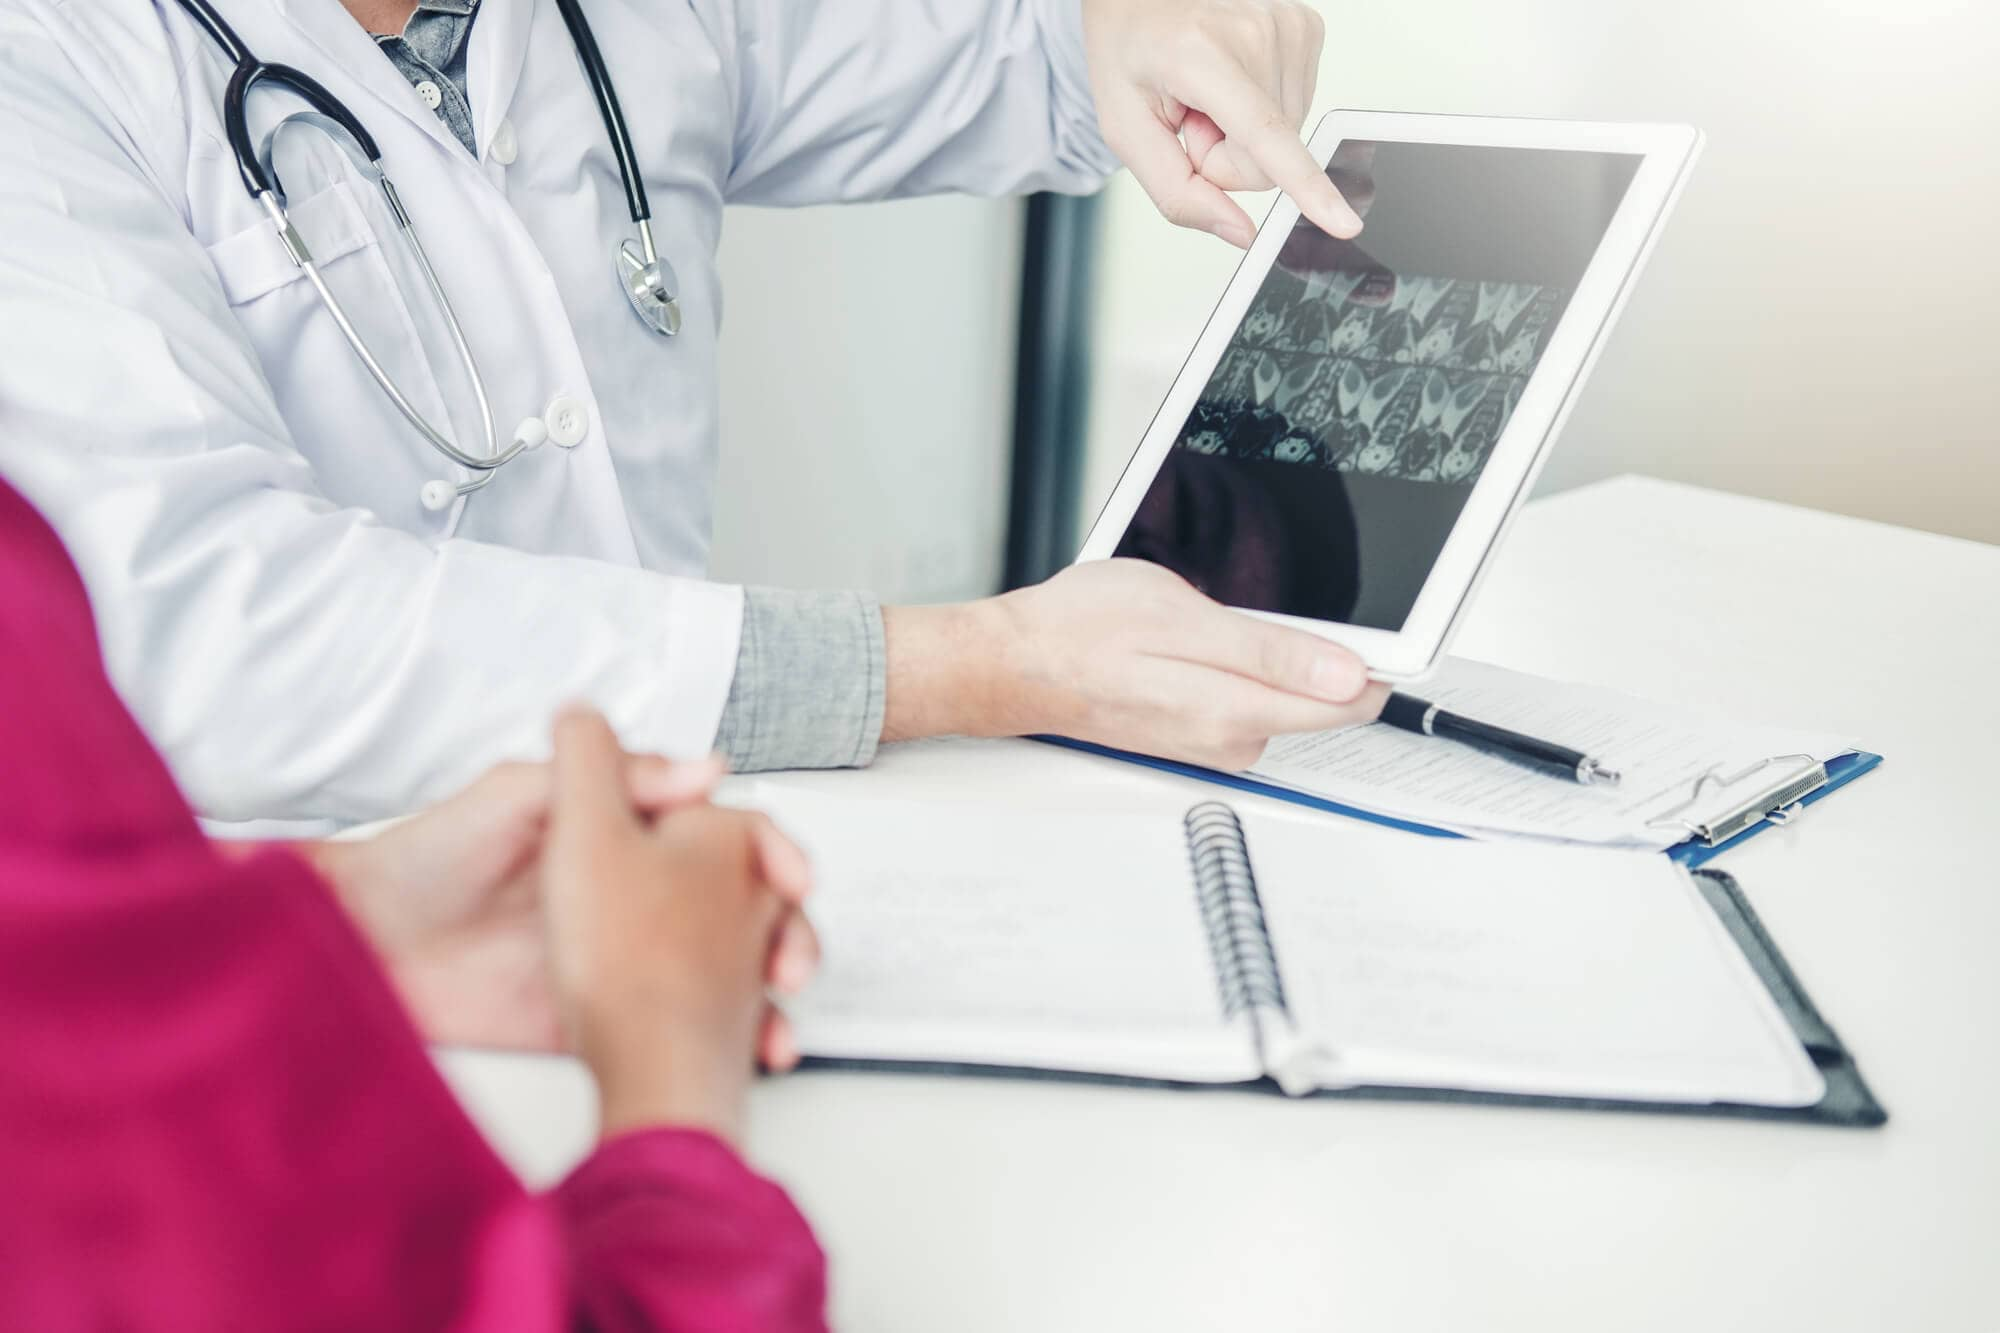 Doctors Imaging-Enabled Physician Reviewing Patient's Records via Secure Web Portal